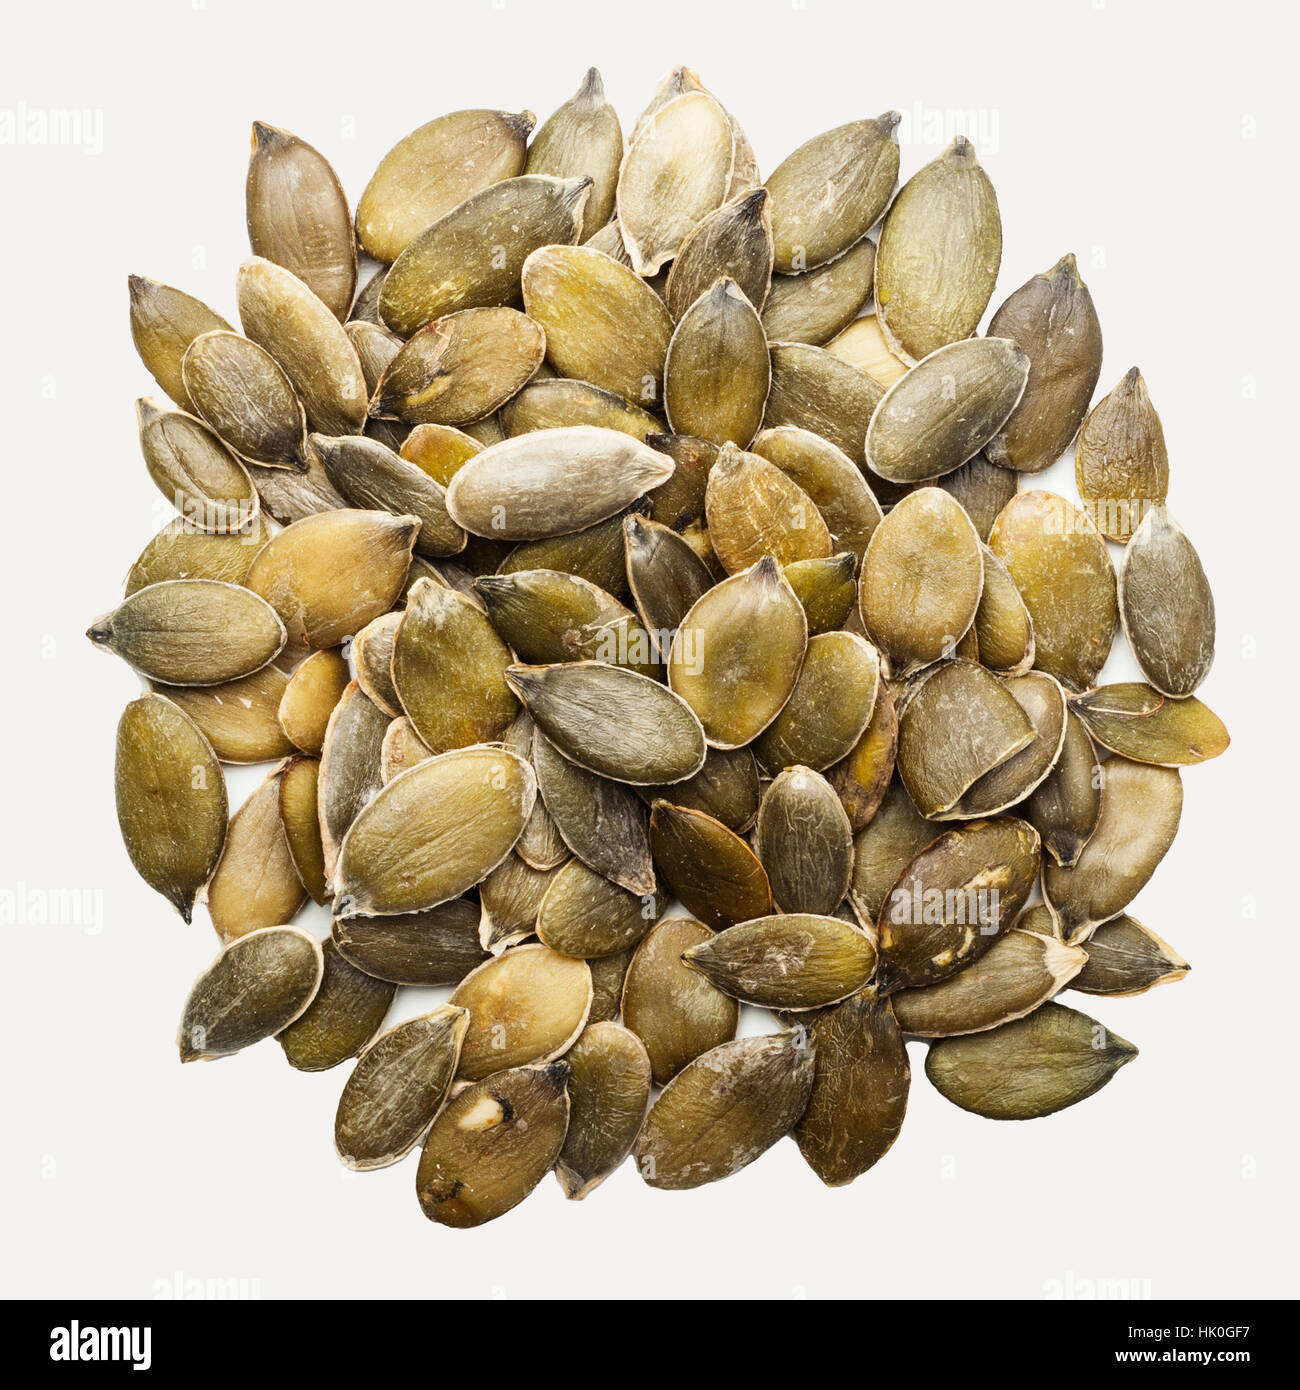 Pumpkin seeds on a white background - Stock Image